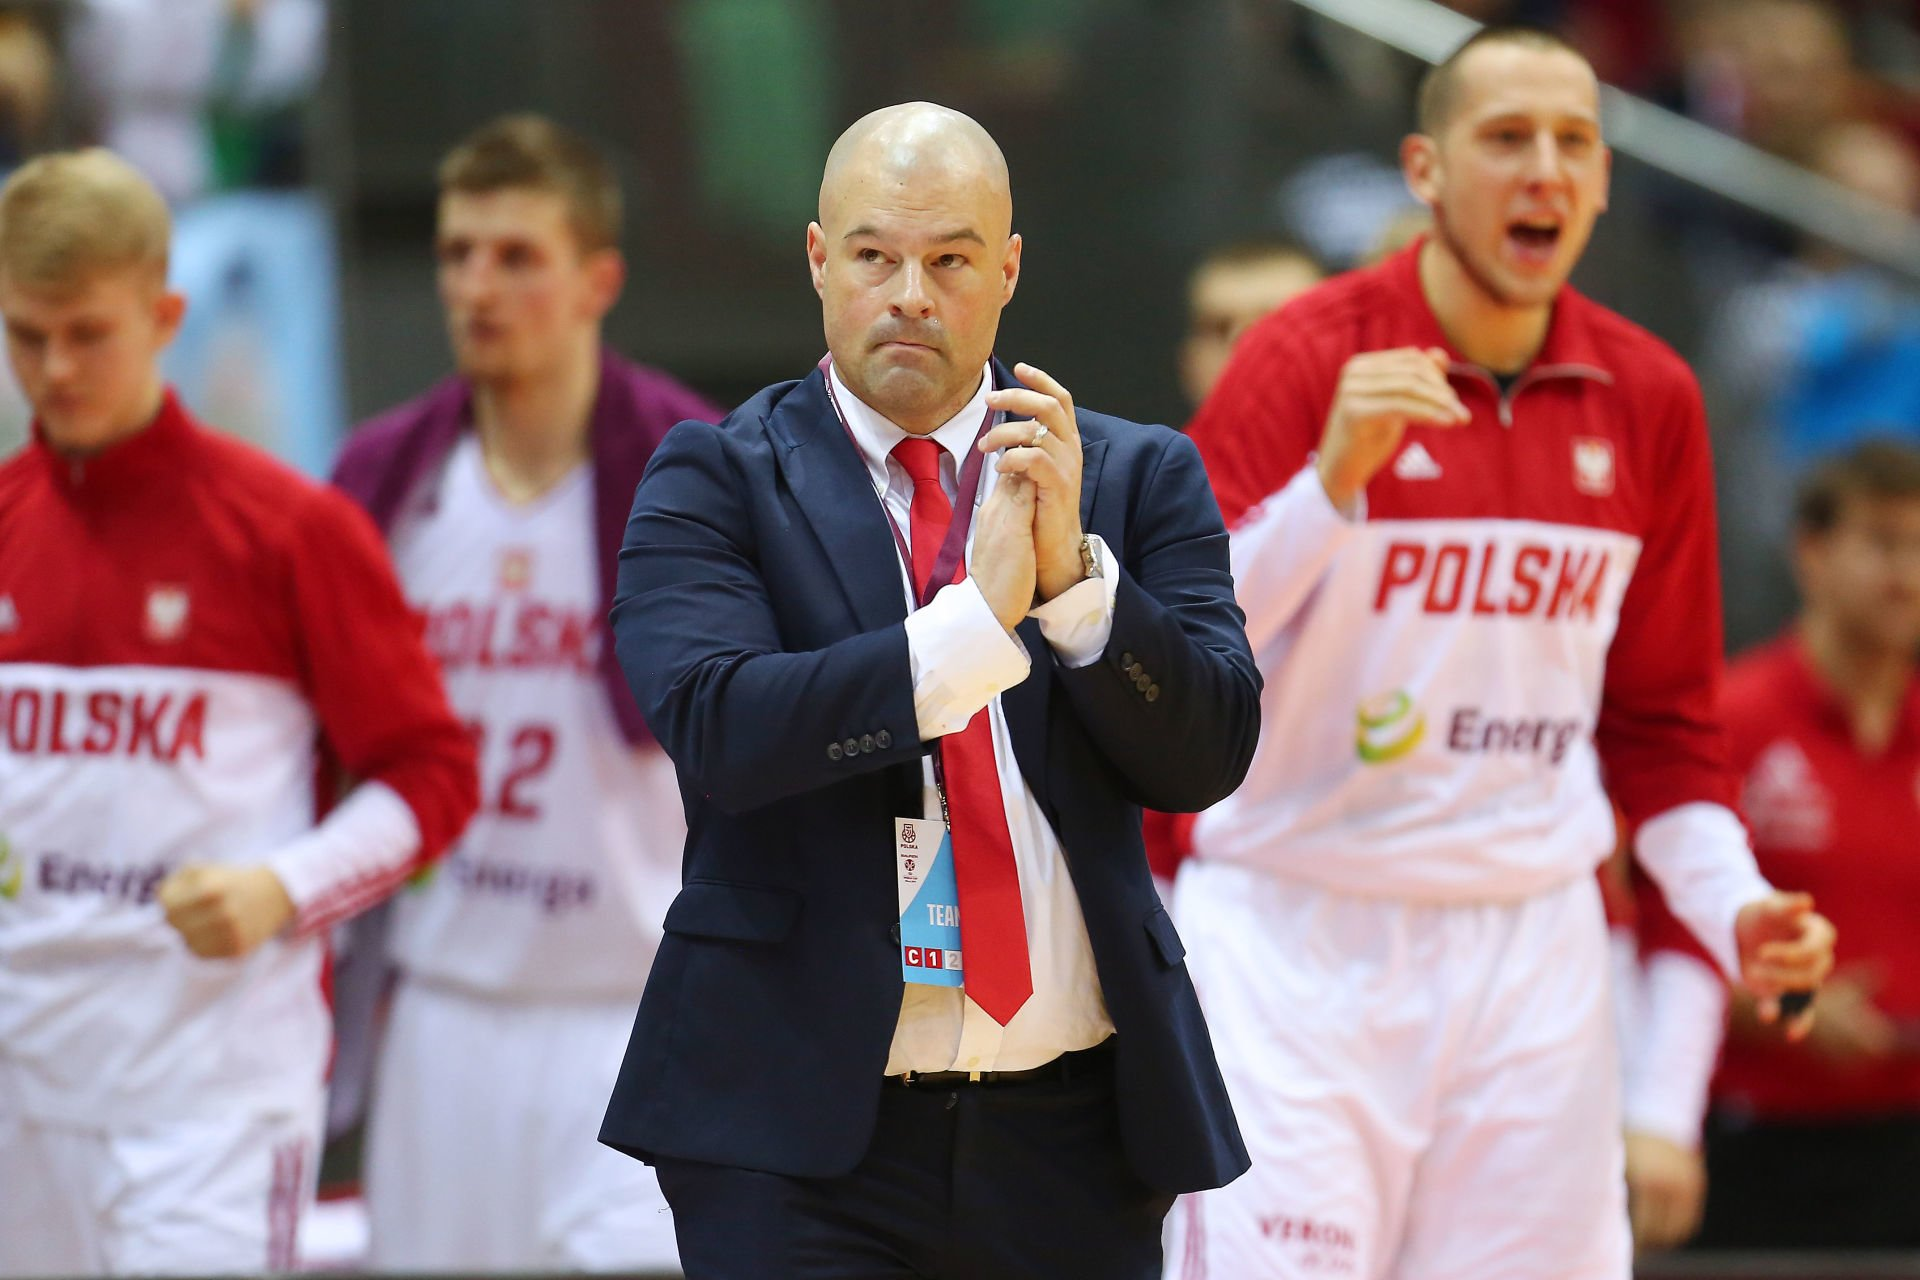 2018.12.02 Gdansk Mecz kwalifikacyjny do Mistrzostw Swiata Chiny 2019 Polska - Wlochy N/z Mike Taylor Foto Piotr Matusewicz / PressFocus 2018.12.02 Gdansk Basketball Qualification match World Cup China 2019 Poland - Italy Mike Taylor Credit: Piotr Matusewicz / PressFocus / NEWSPIX.PL --- Newspix.pl *** Local Caption *** www.newspix.pl mail us: info@newspix.pl call us: 0048 022 23 22 222 --- Polish Picture Agency by Ringier Axel Springer Poland